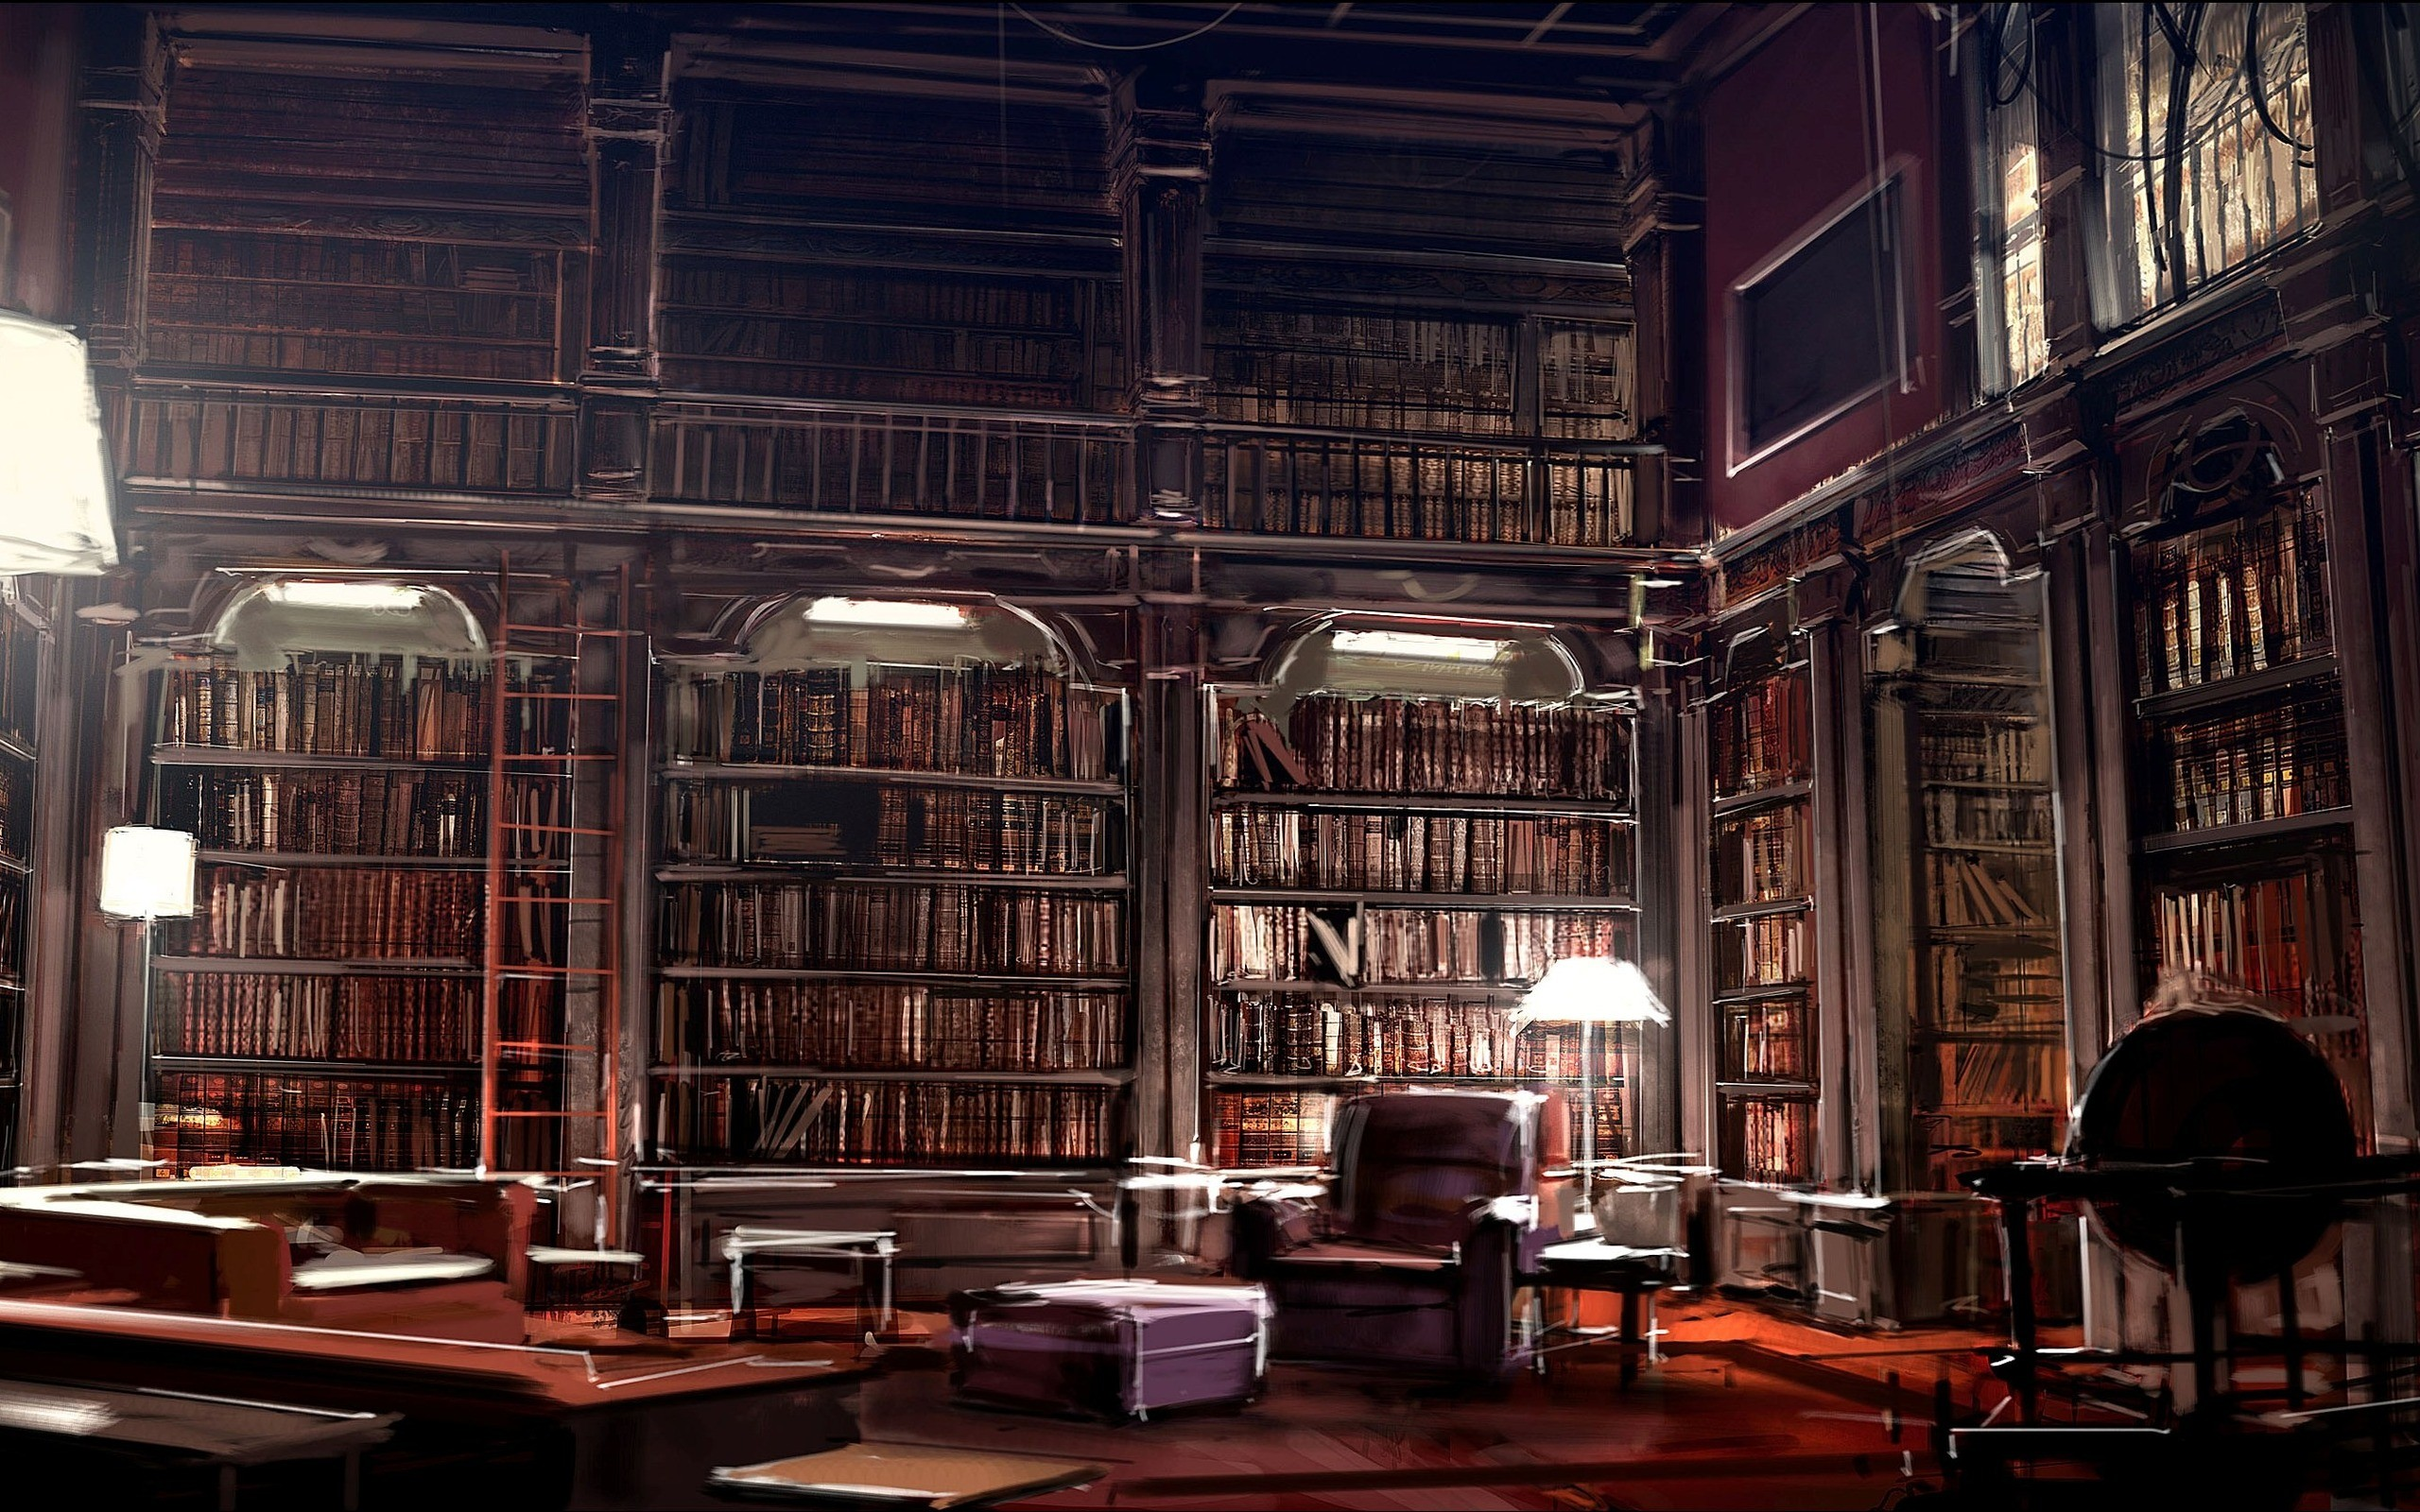 Libraries Reading Wallpapers   Books to Read Wallpaper 28317155 2560x1600